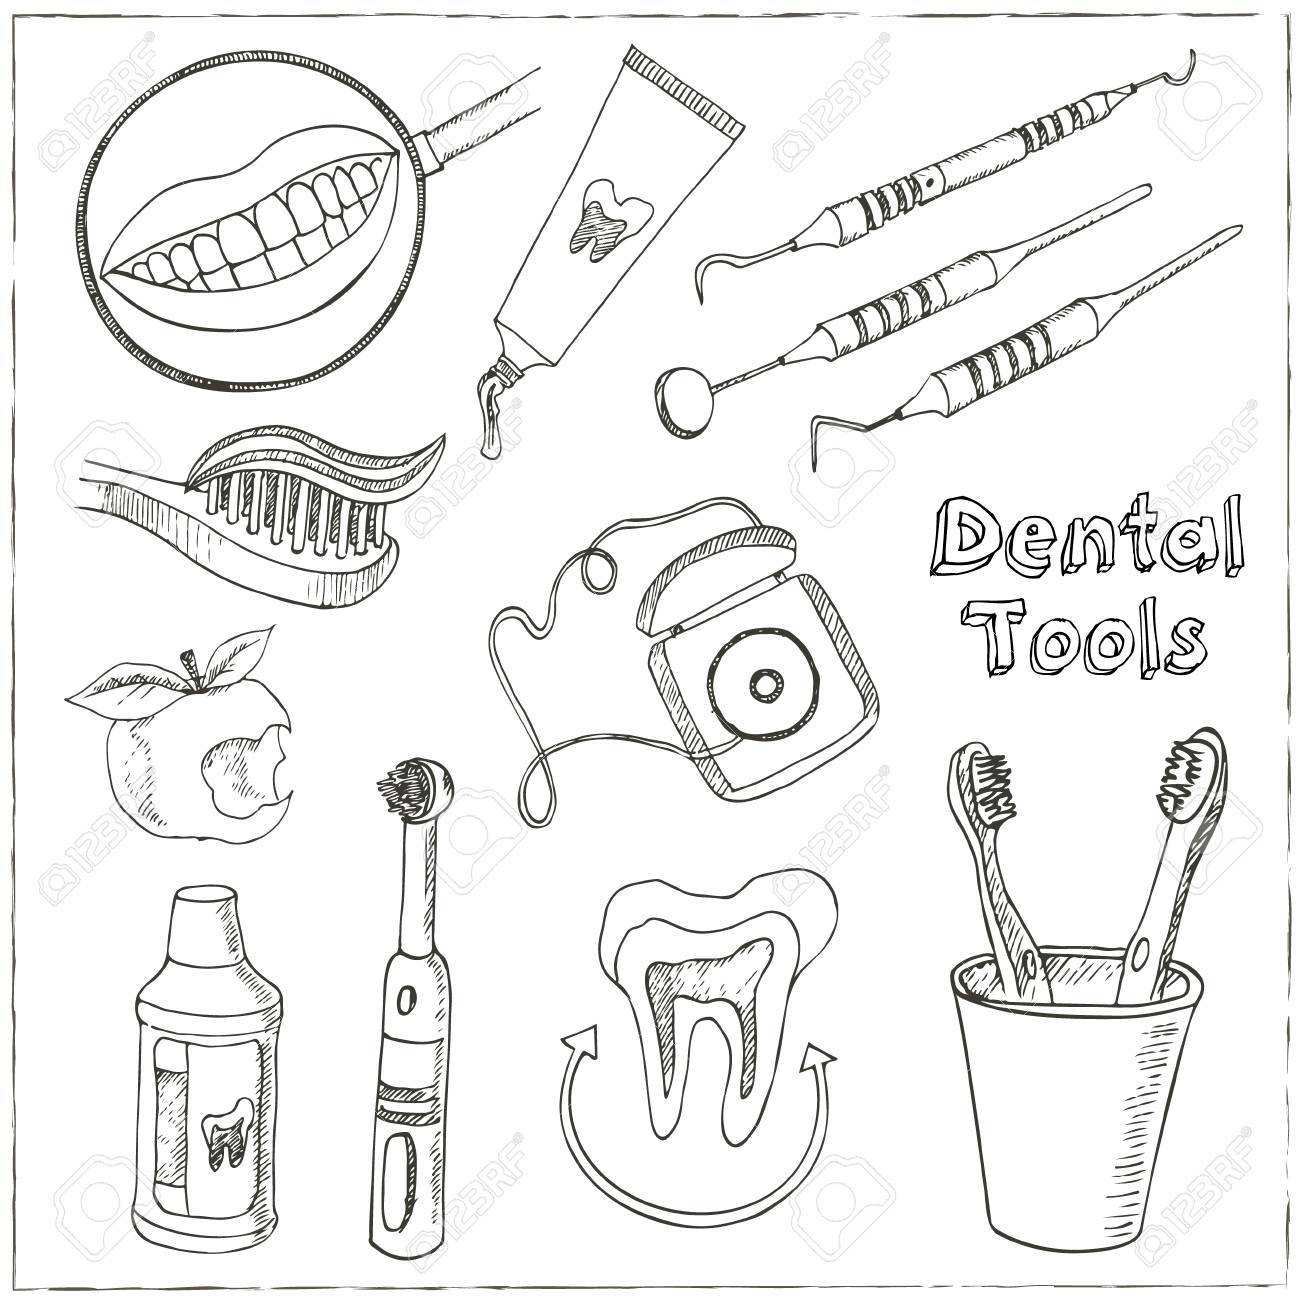 Doodle style dentist equipment sketch. Set includes picks, mirrors, caduceus, toothbrush, smile, and teeth. - 54920578